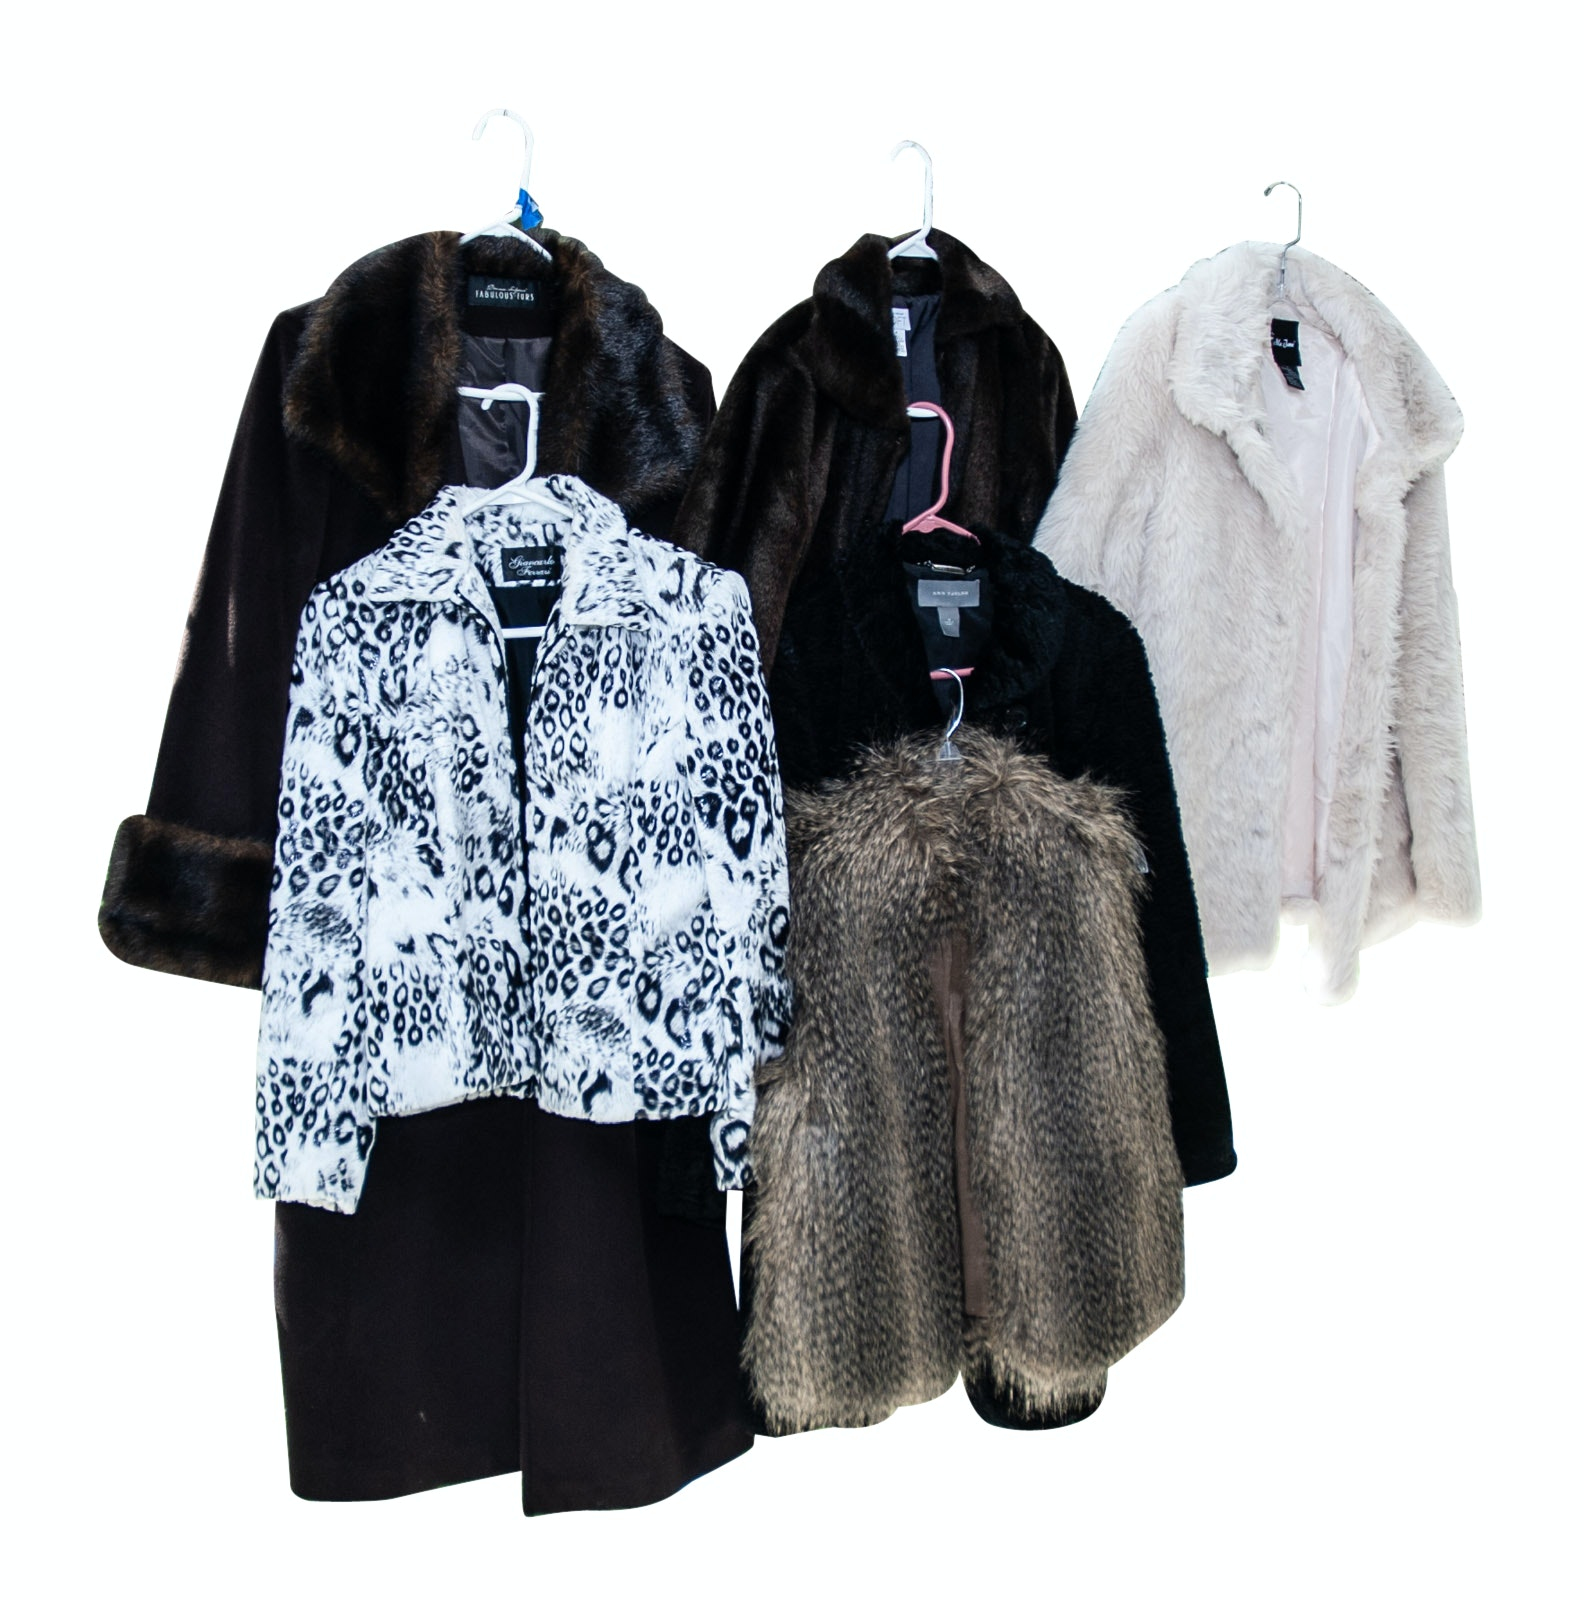 Faux Fur Coats Including Ann Taylor, Michael Kors, and Giancarlo Ferrari